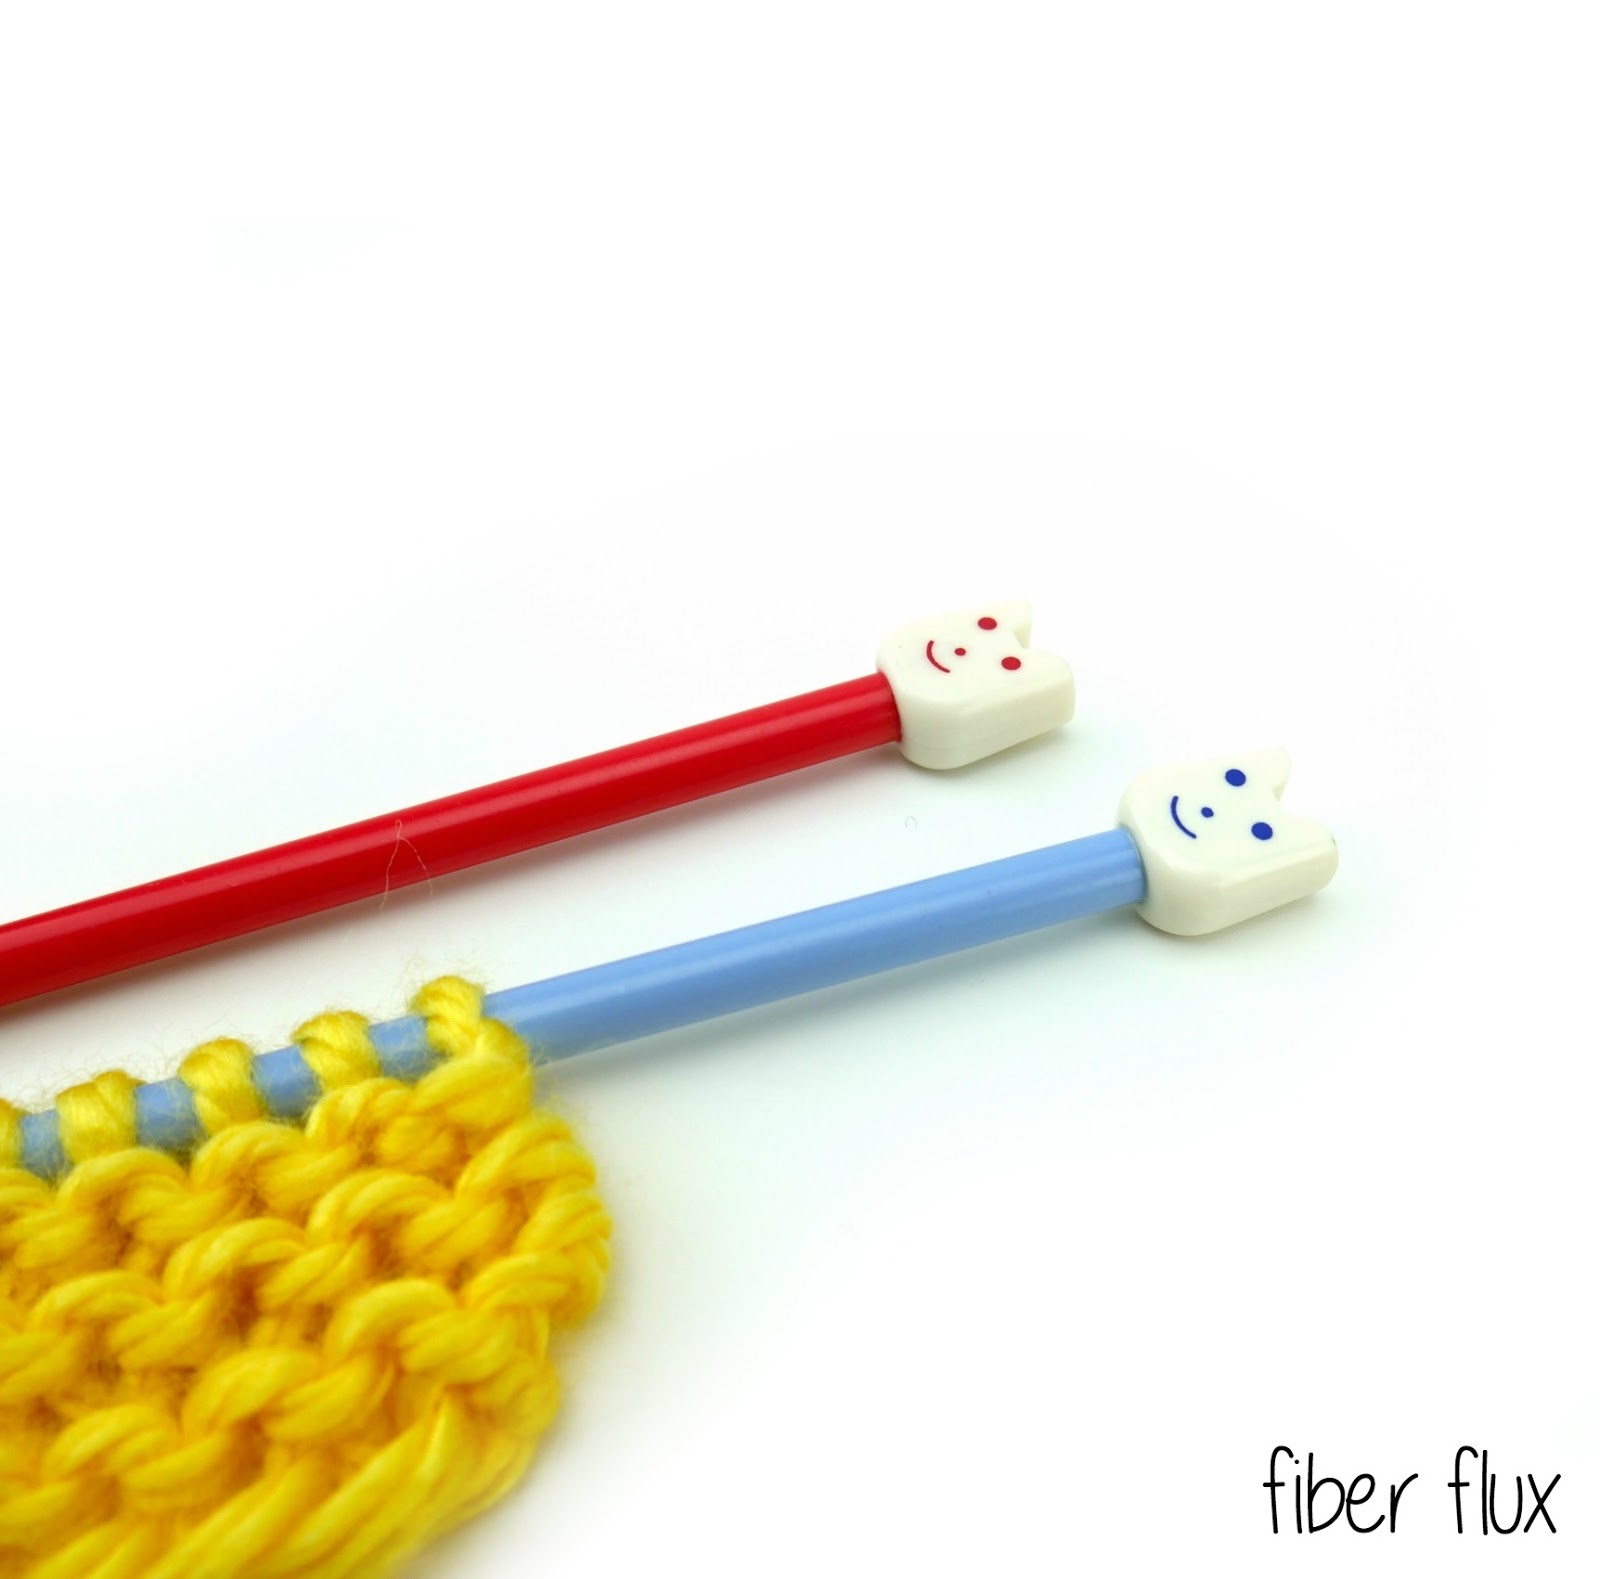 Knitting Tools For Kids : Fiber flux review lion brand kids knitting needles